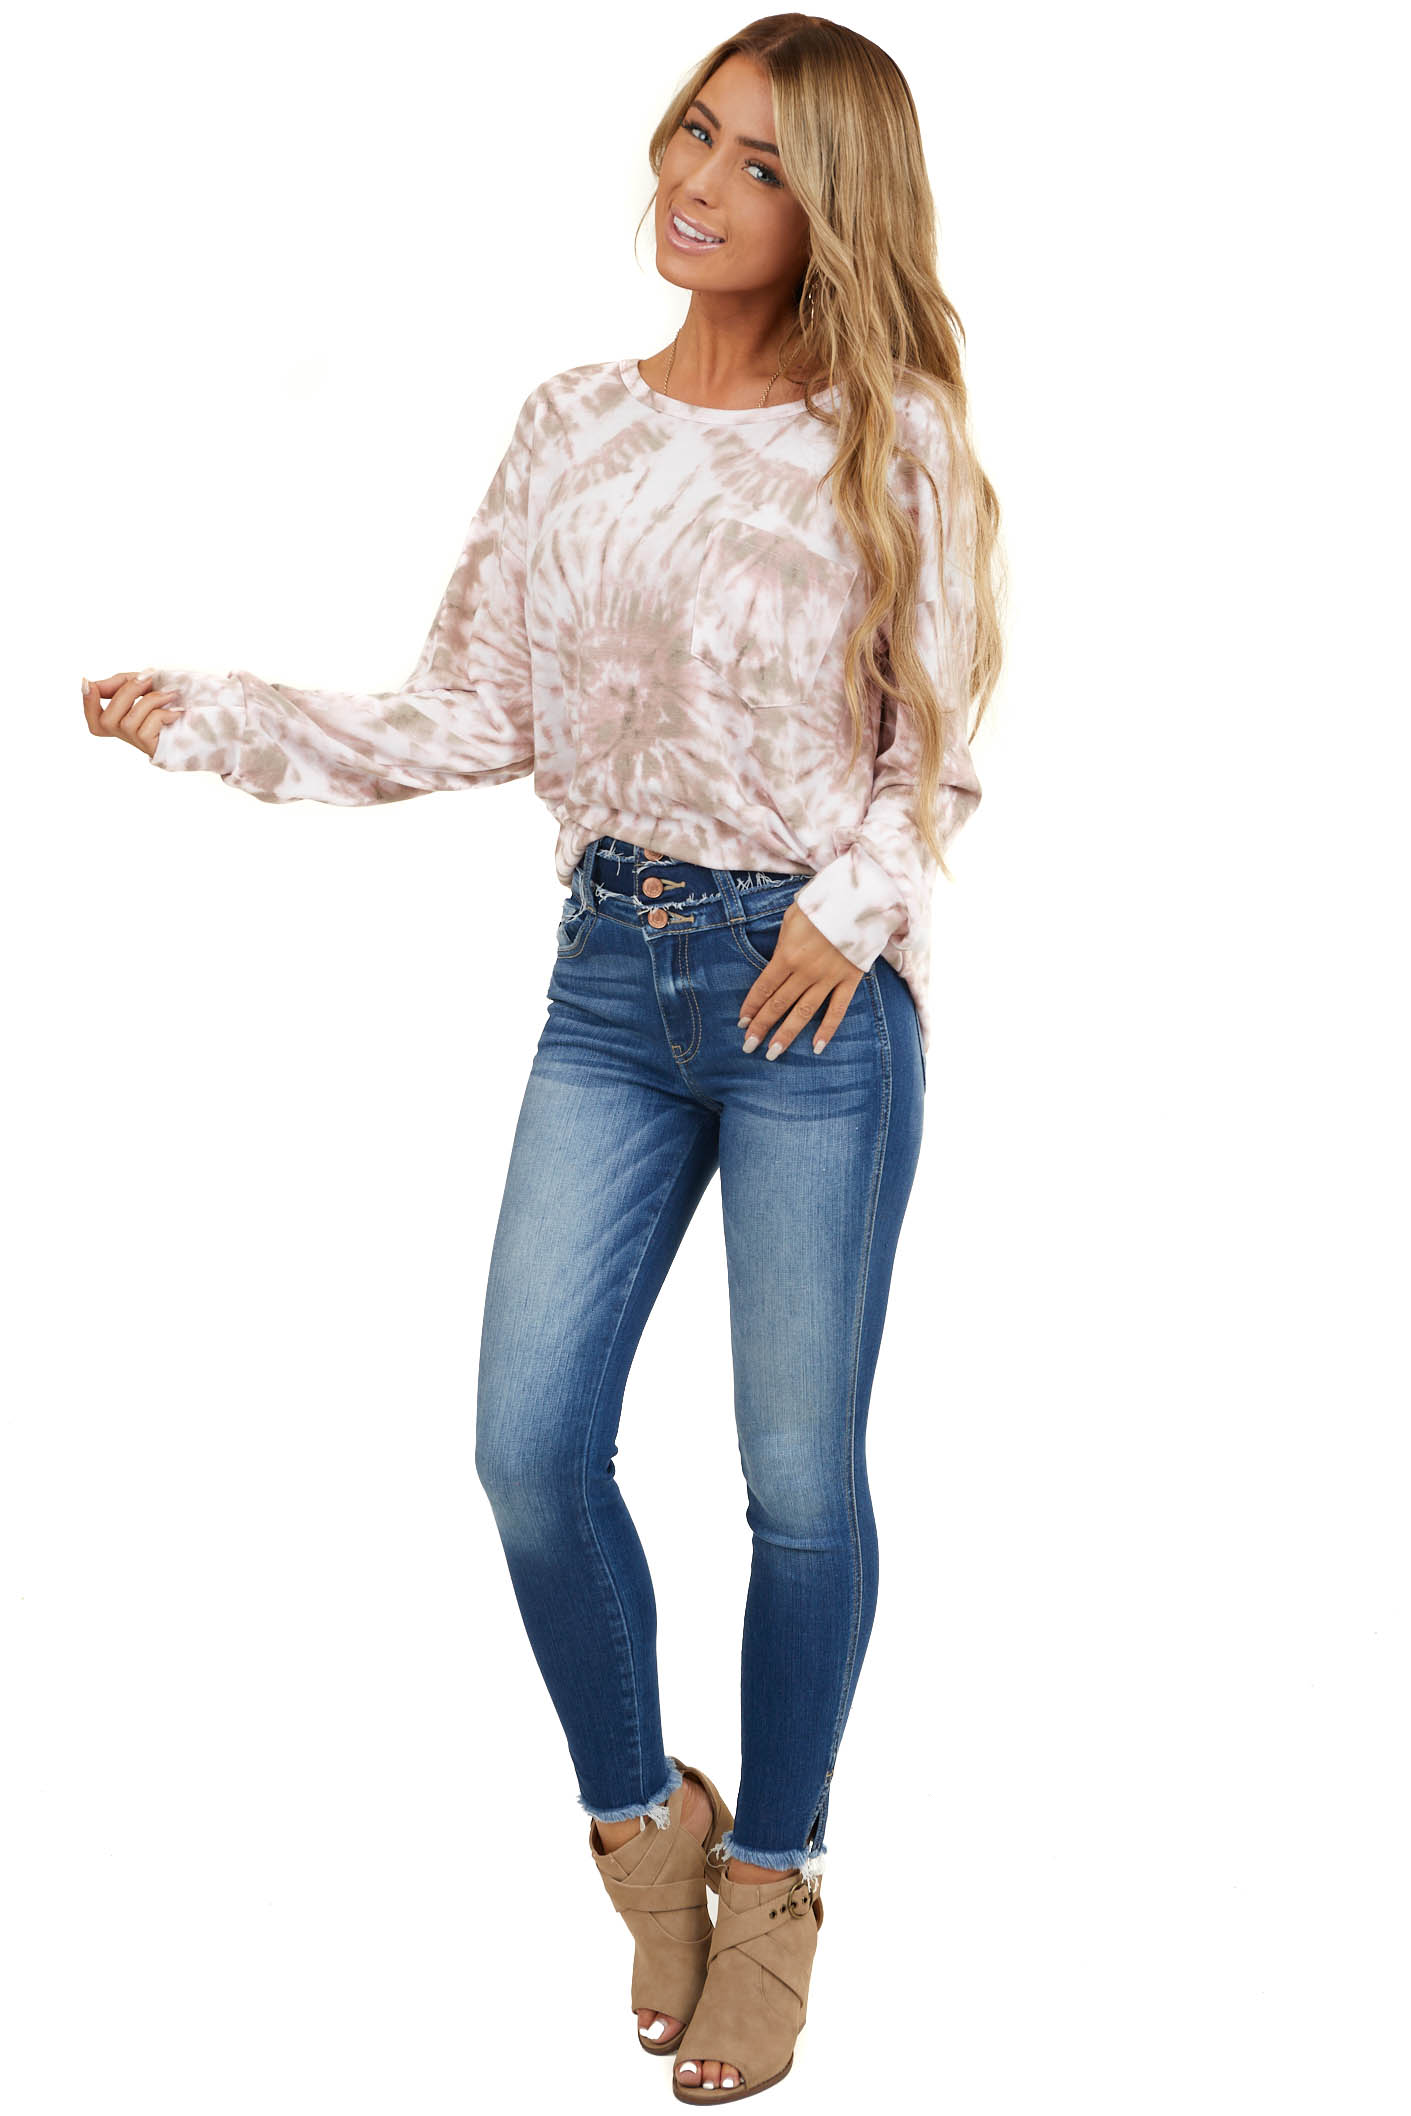 Dusty Blush and Taupe Tie Dye Top with Front Pocket